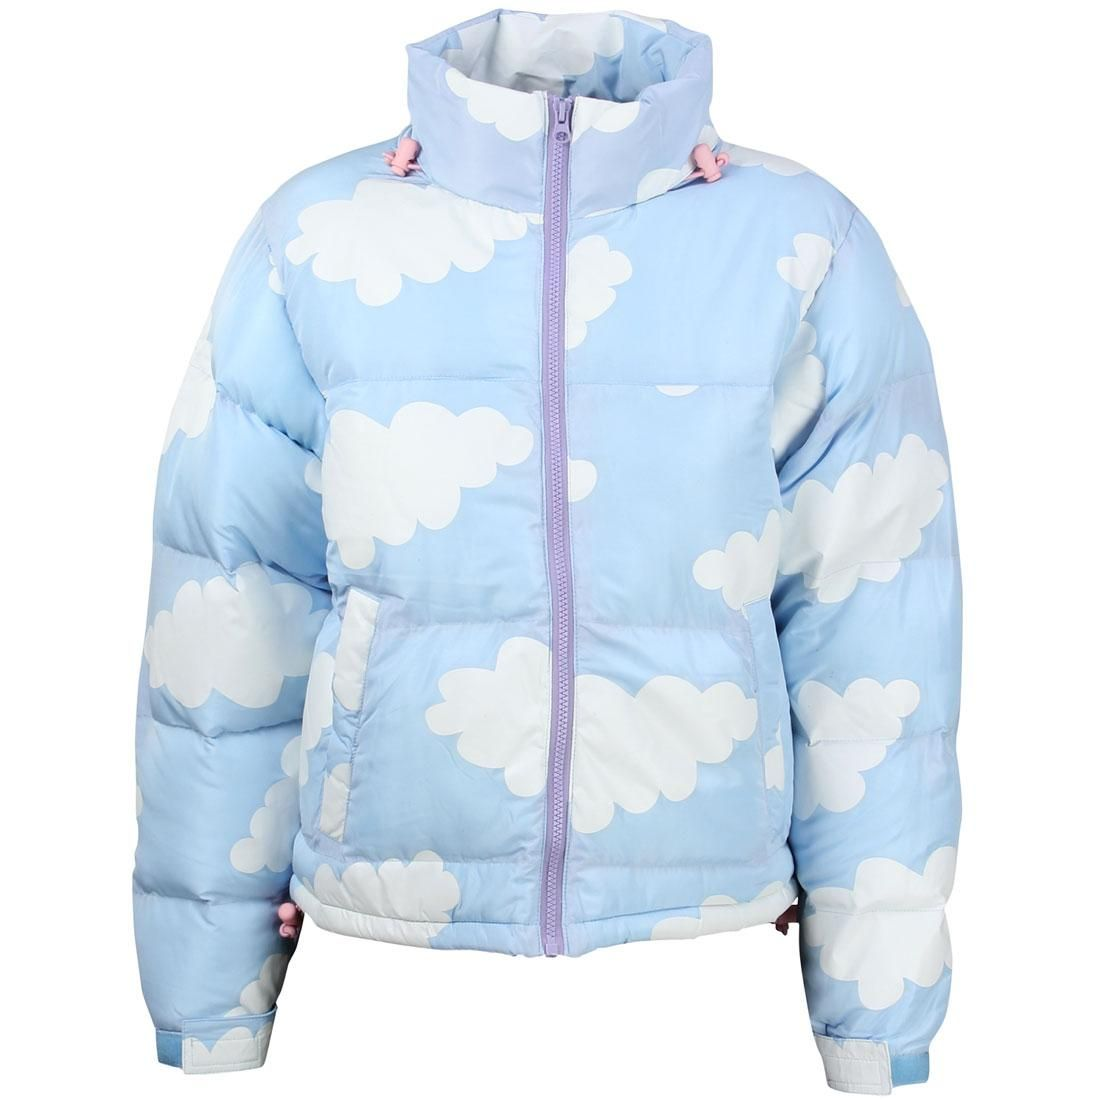 Lazy Oaf - Women's cloud print puffer jacket $199 USD